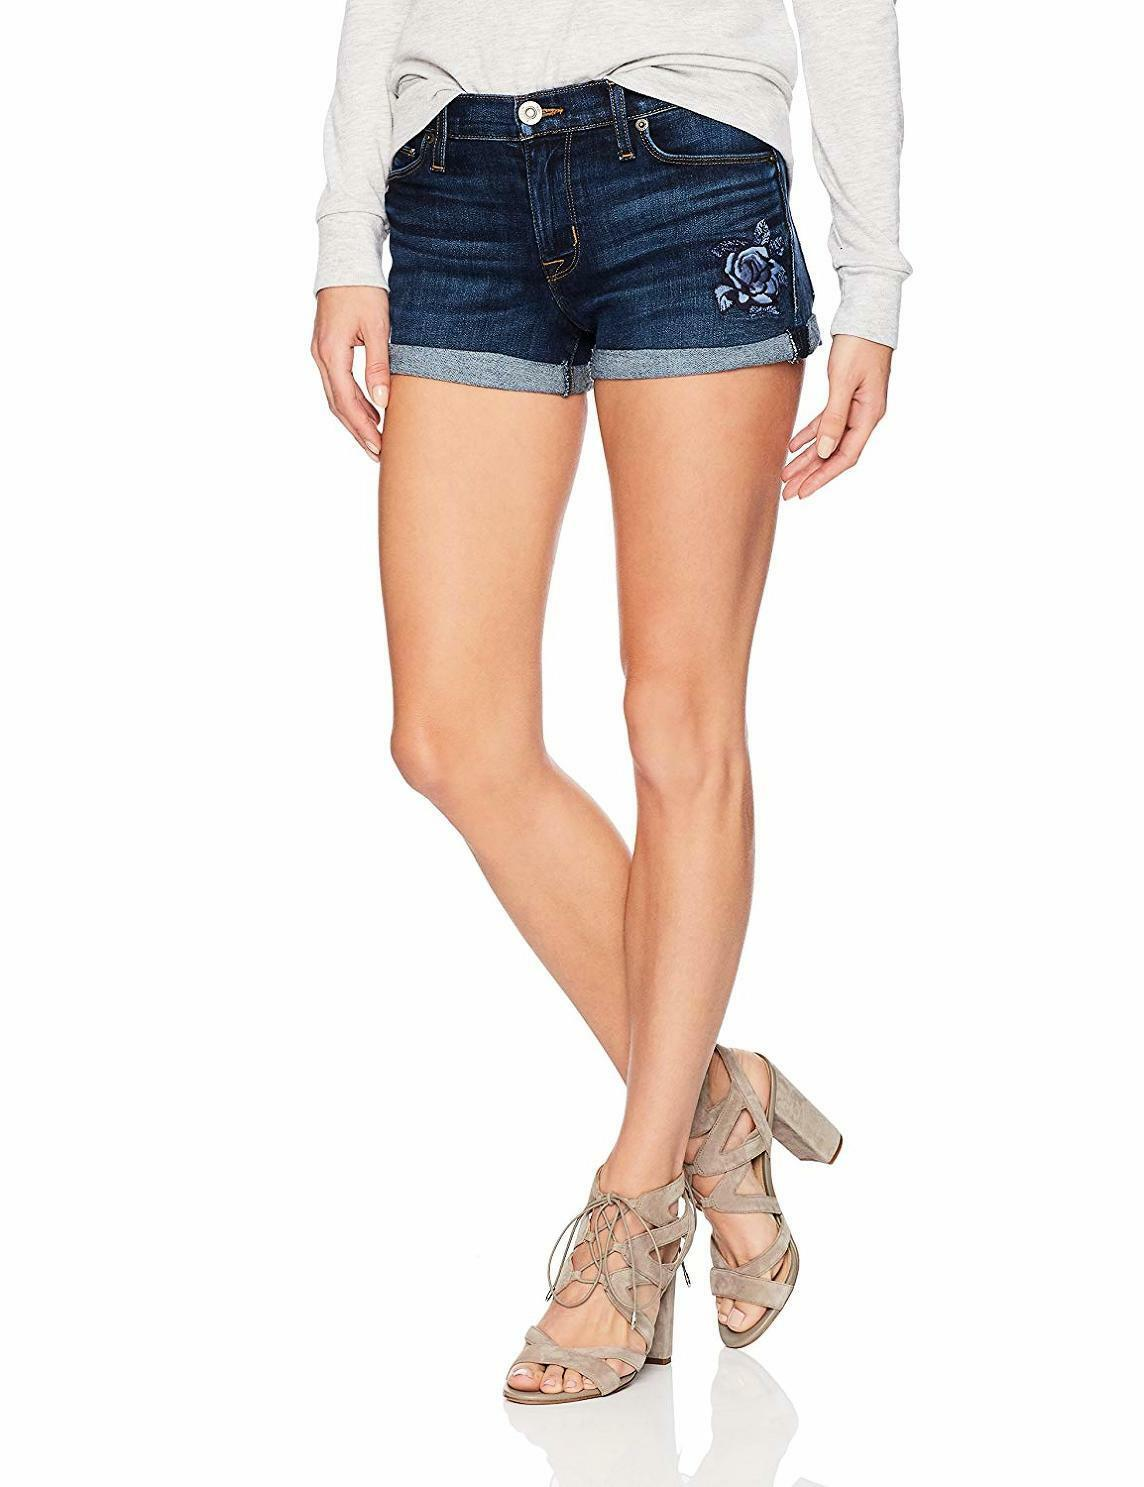 Hudson Jeans Women's Asha Embroidered Midrise Cuffed Jean Short